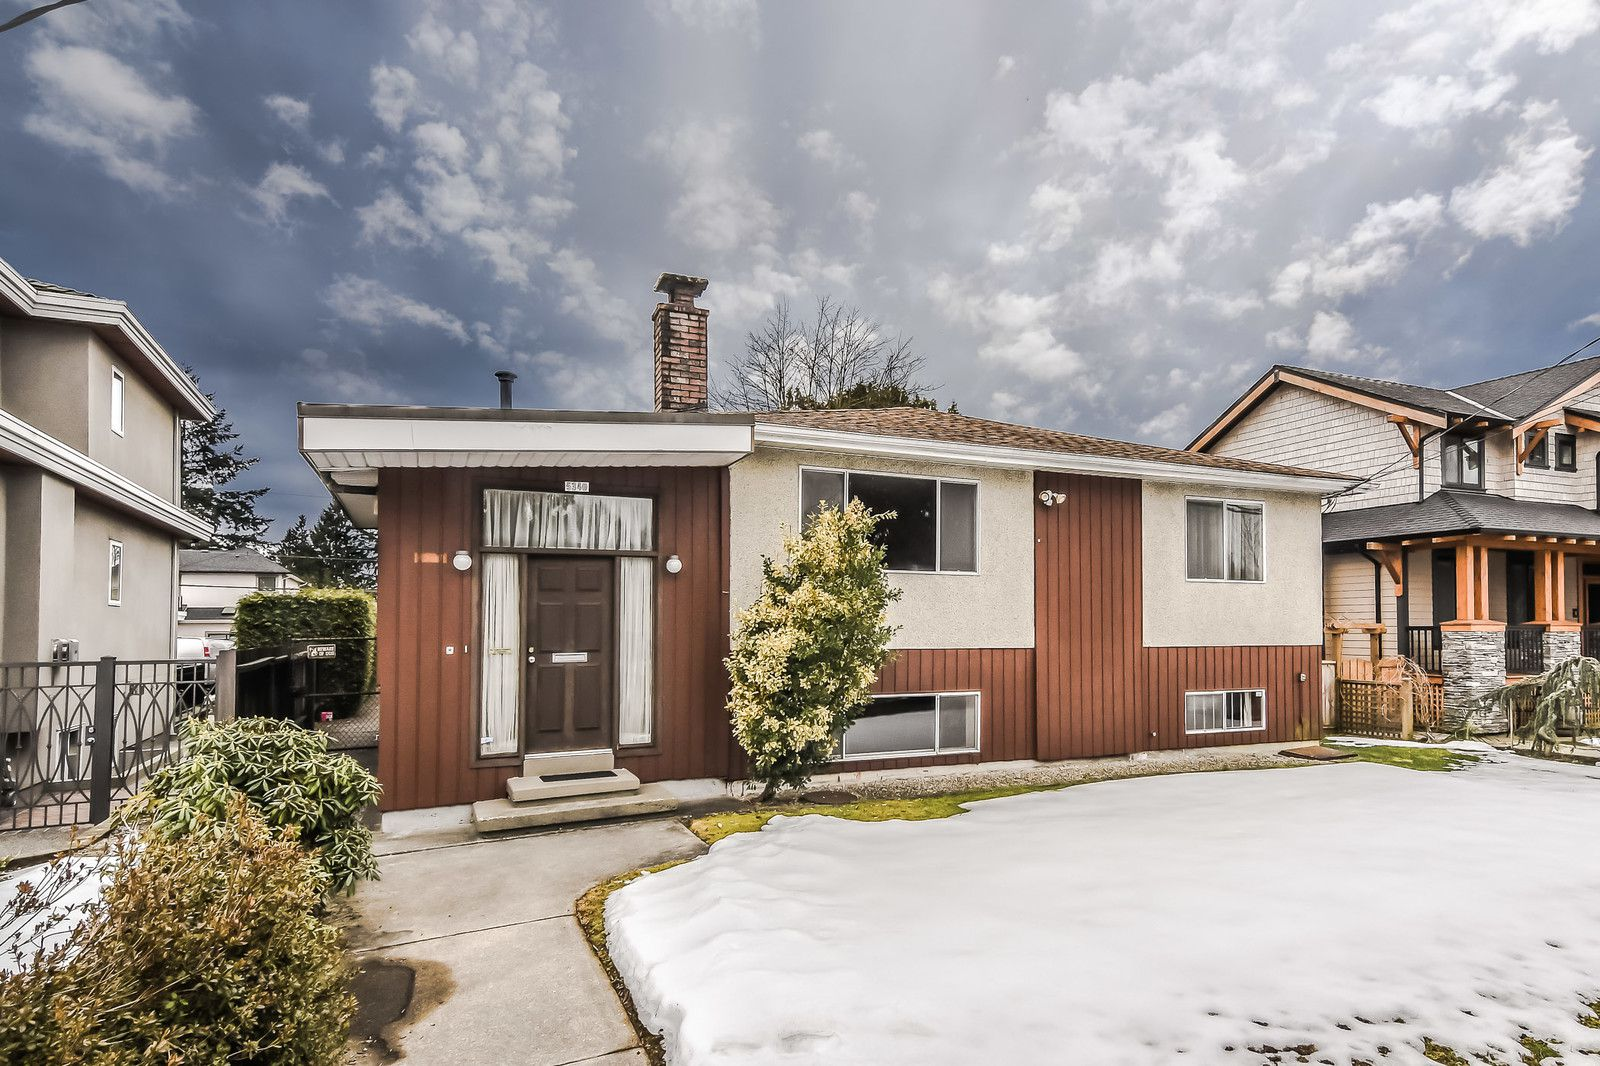 Main Photo: 5340 SPRUCE Street in Burnaby: Deer Lake Place House for sale (Burnaby South)  : MLS®# R2349190